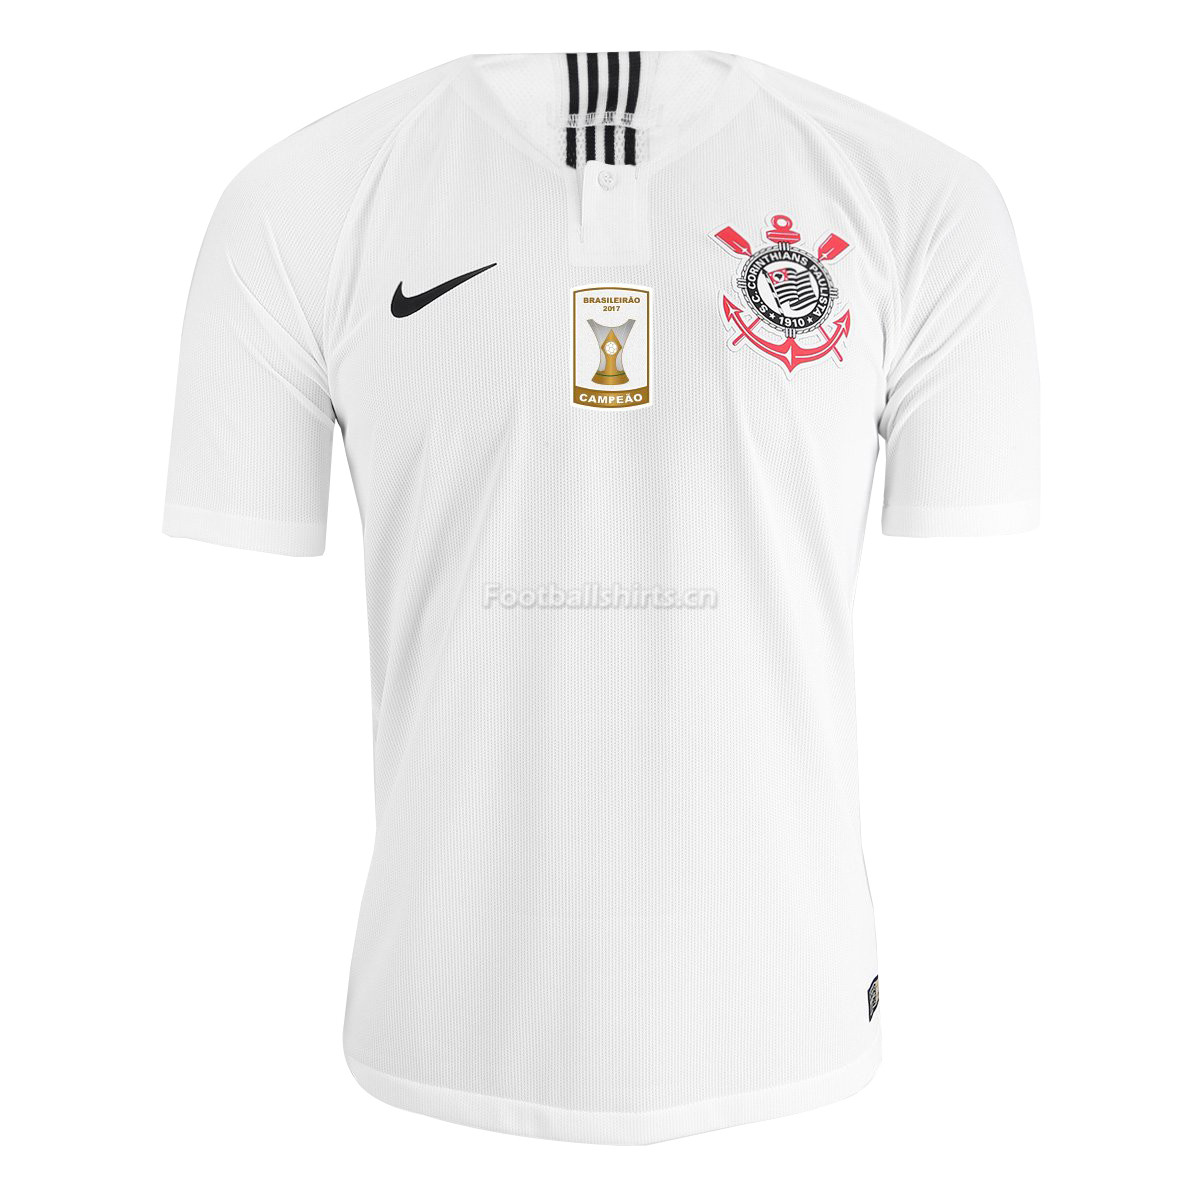 Match Version SC Corinthians Home White Soccer Jersey 2018/19